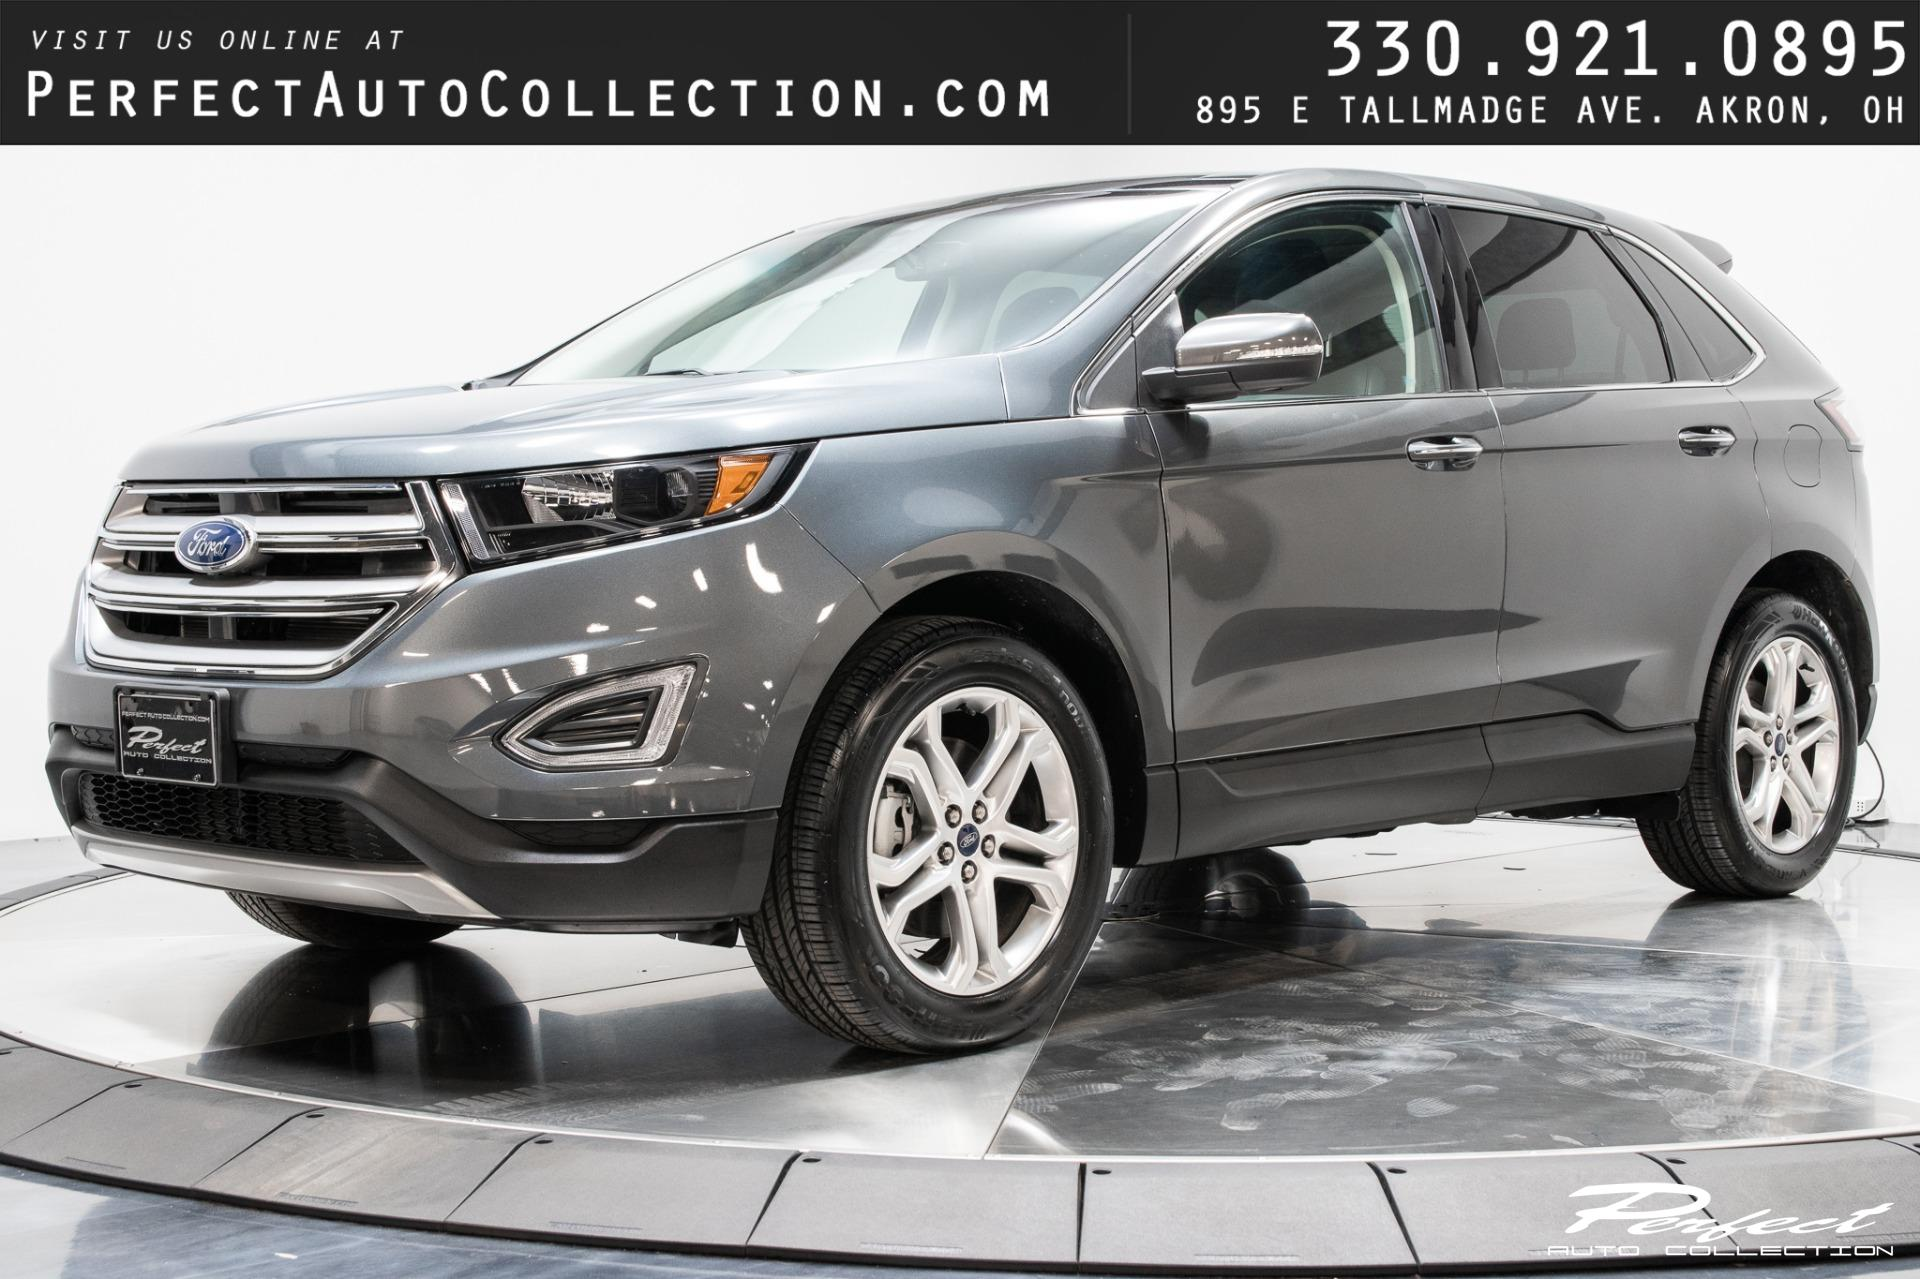 Used 2018 Ford Edge Titanium for sale $29,983 at Perfect Auto Collection in Akron OH 44310 1